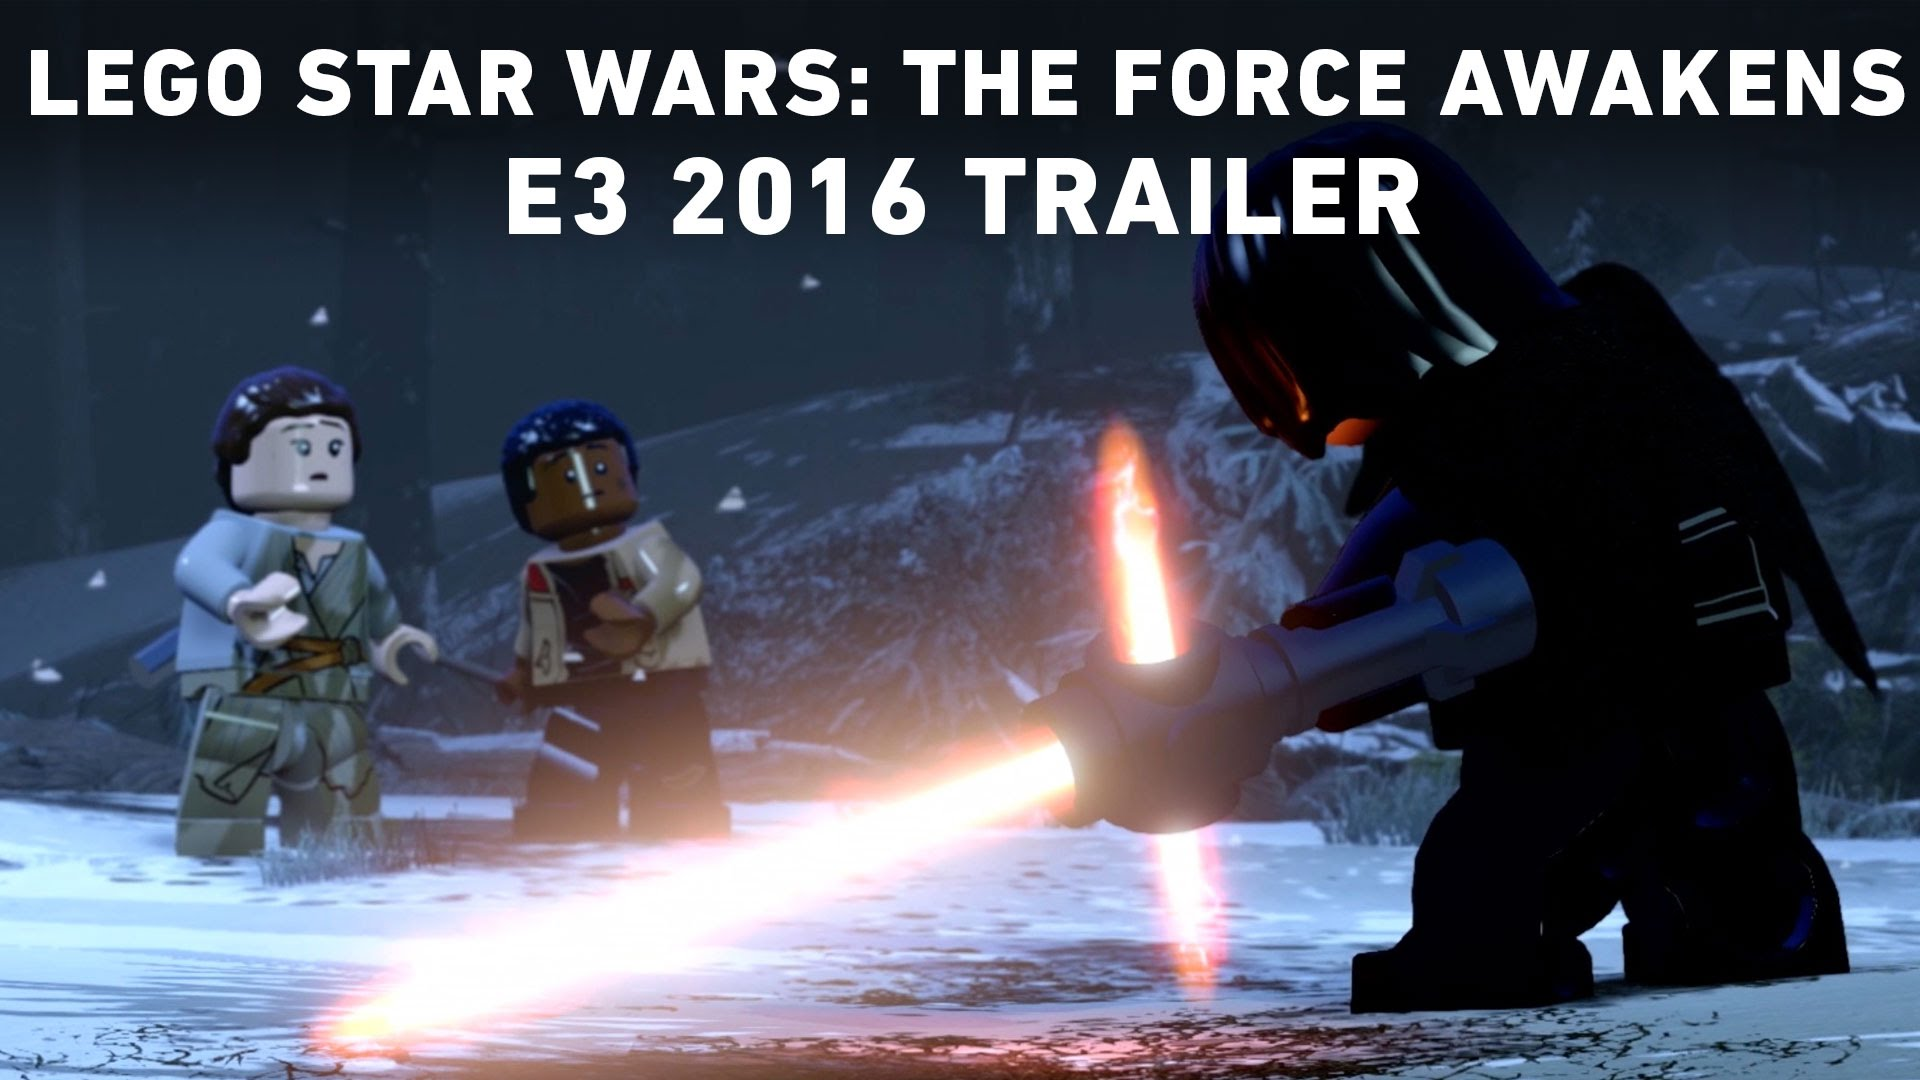 LEGO Star Wars: The Force Awakens – E3 2016 Trailer